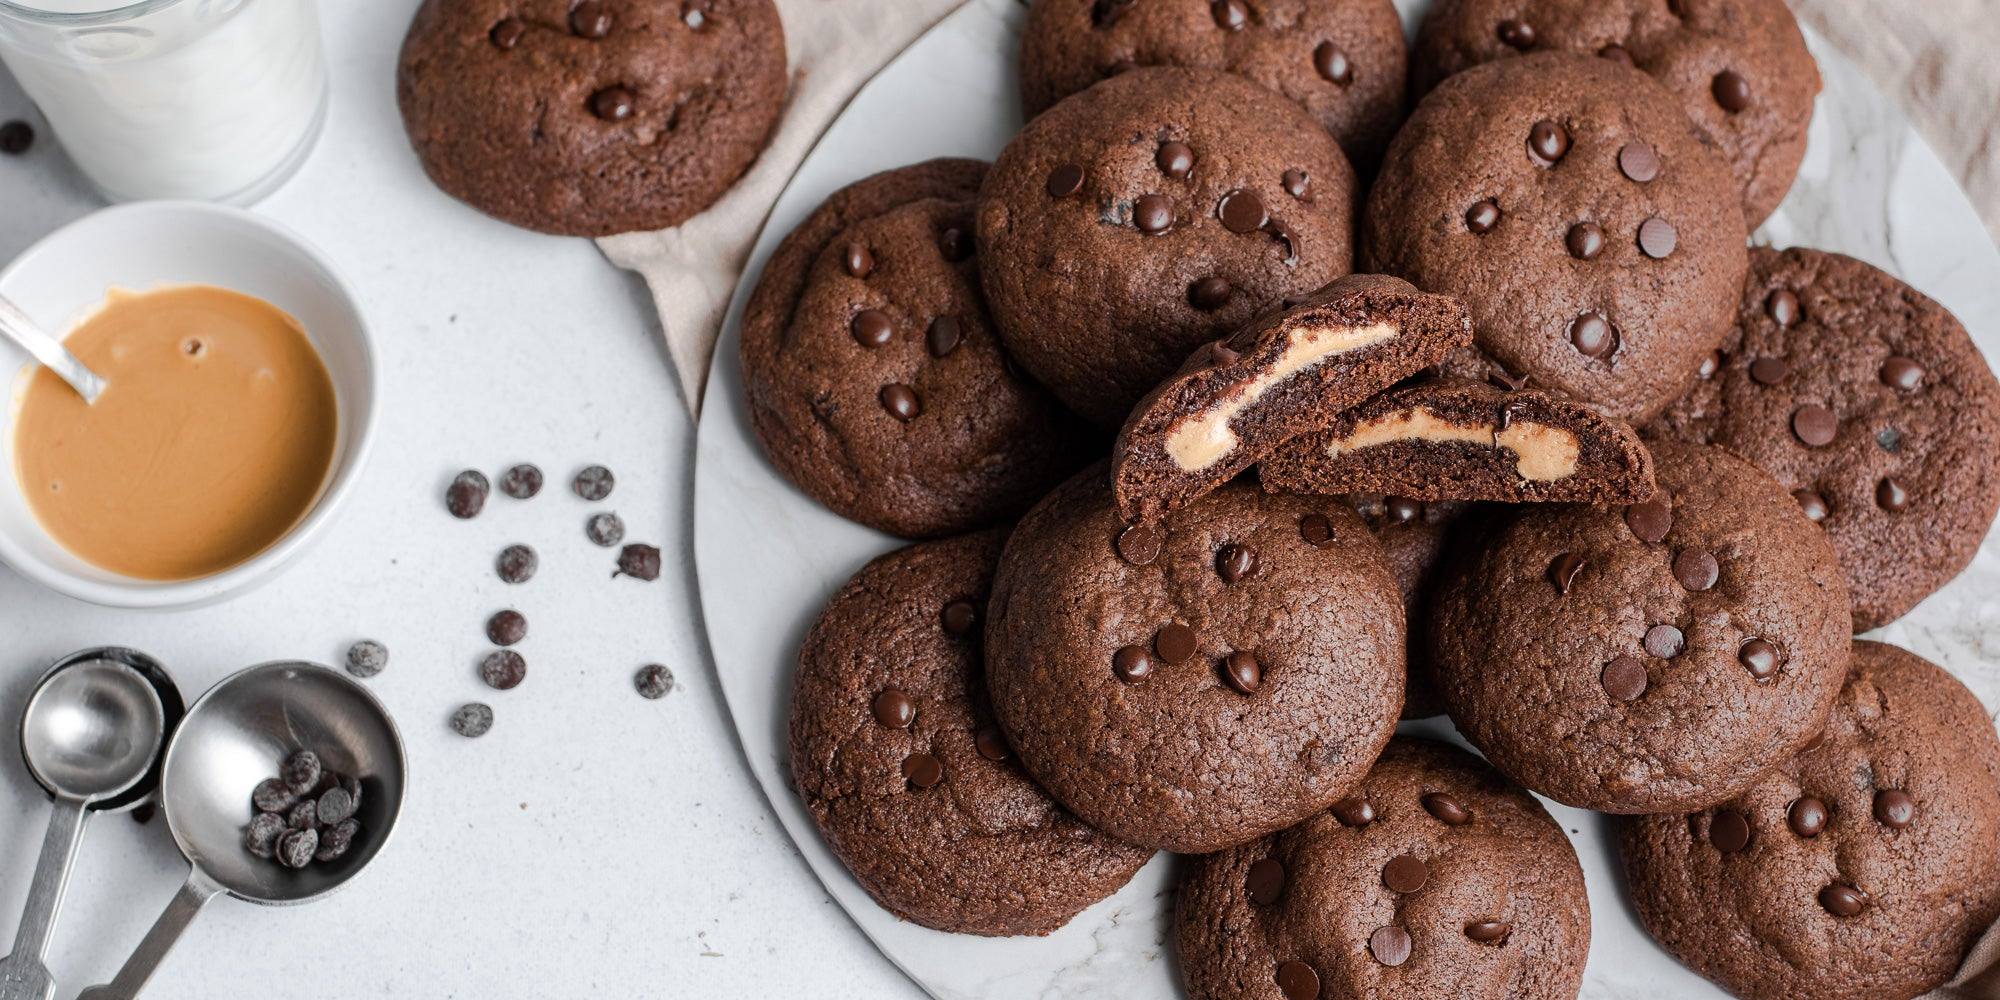 A batch of Chocolate & Peanut Butter Stuffed Cookies with a cookie sliced in half, showing the gooey insides.